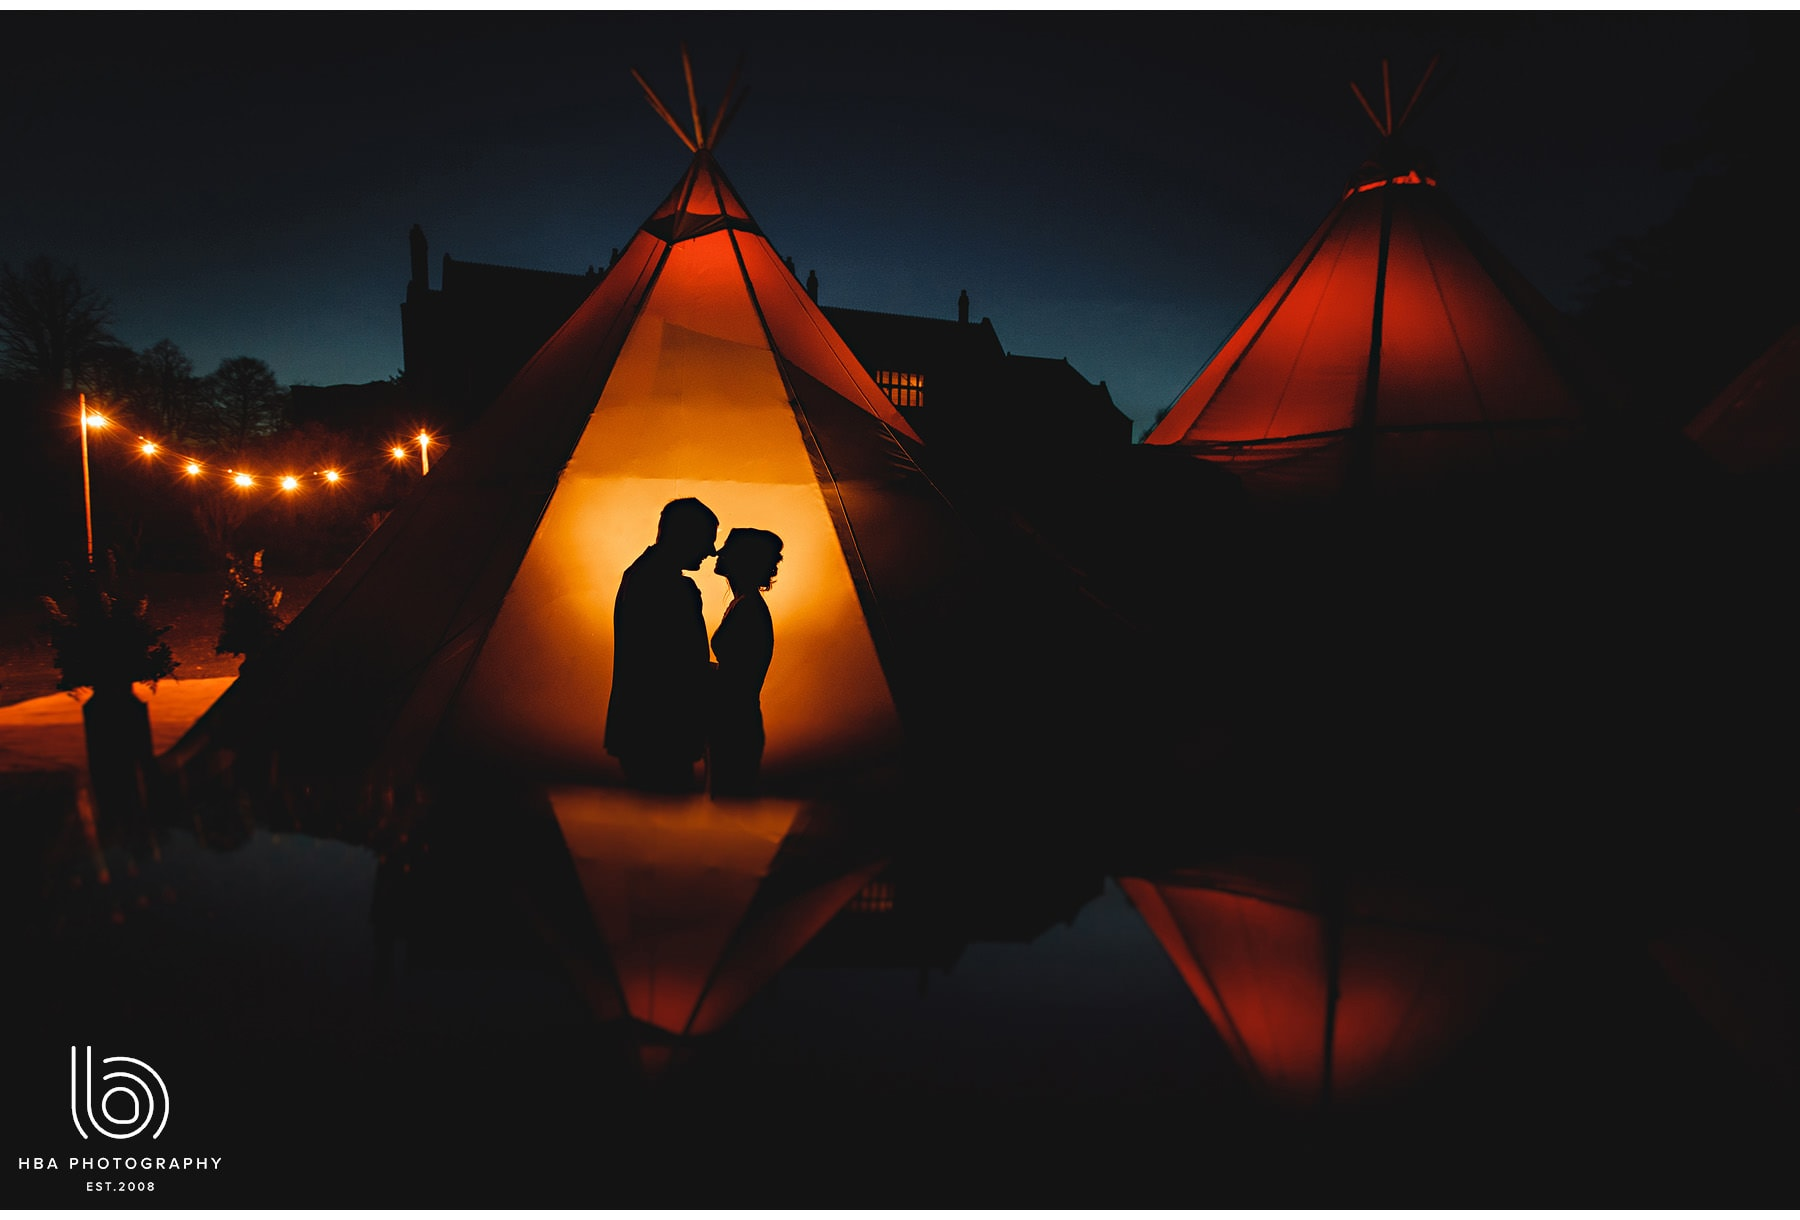 The bride & groom in silhouette against the tipi